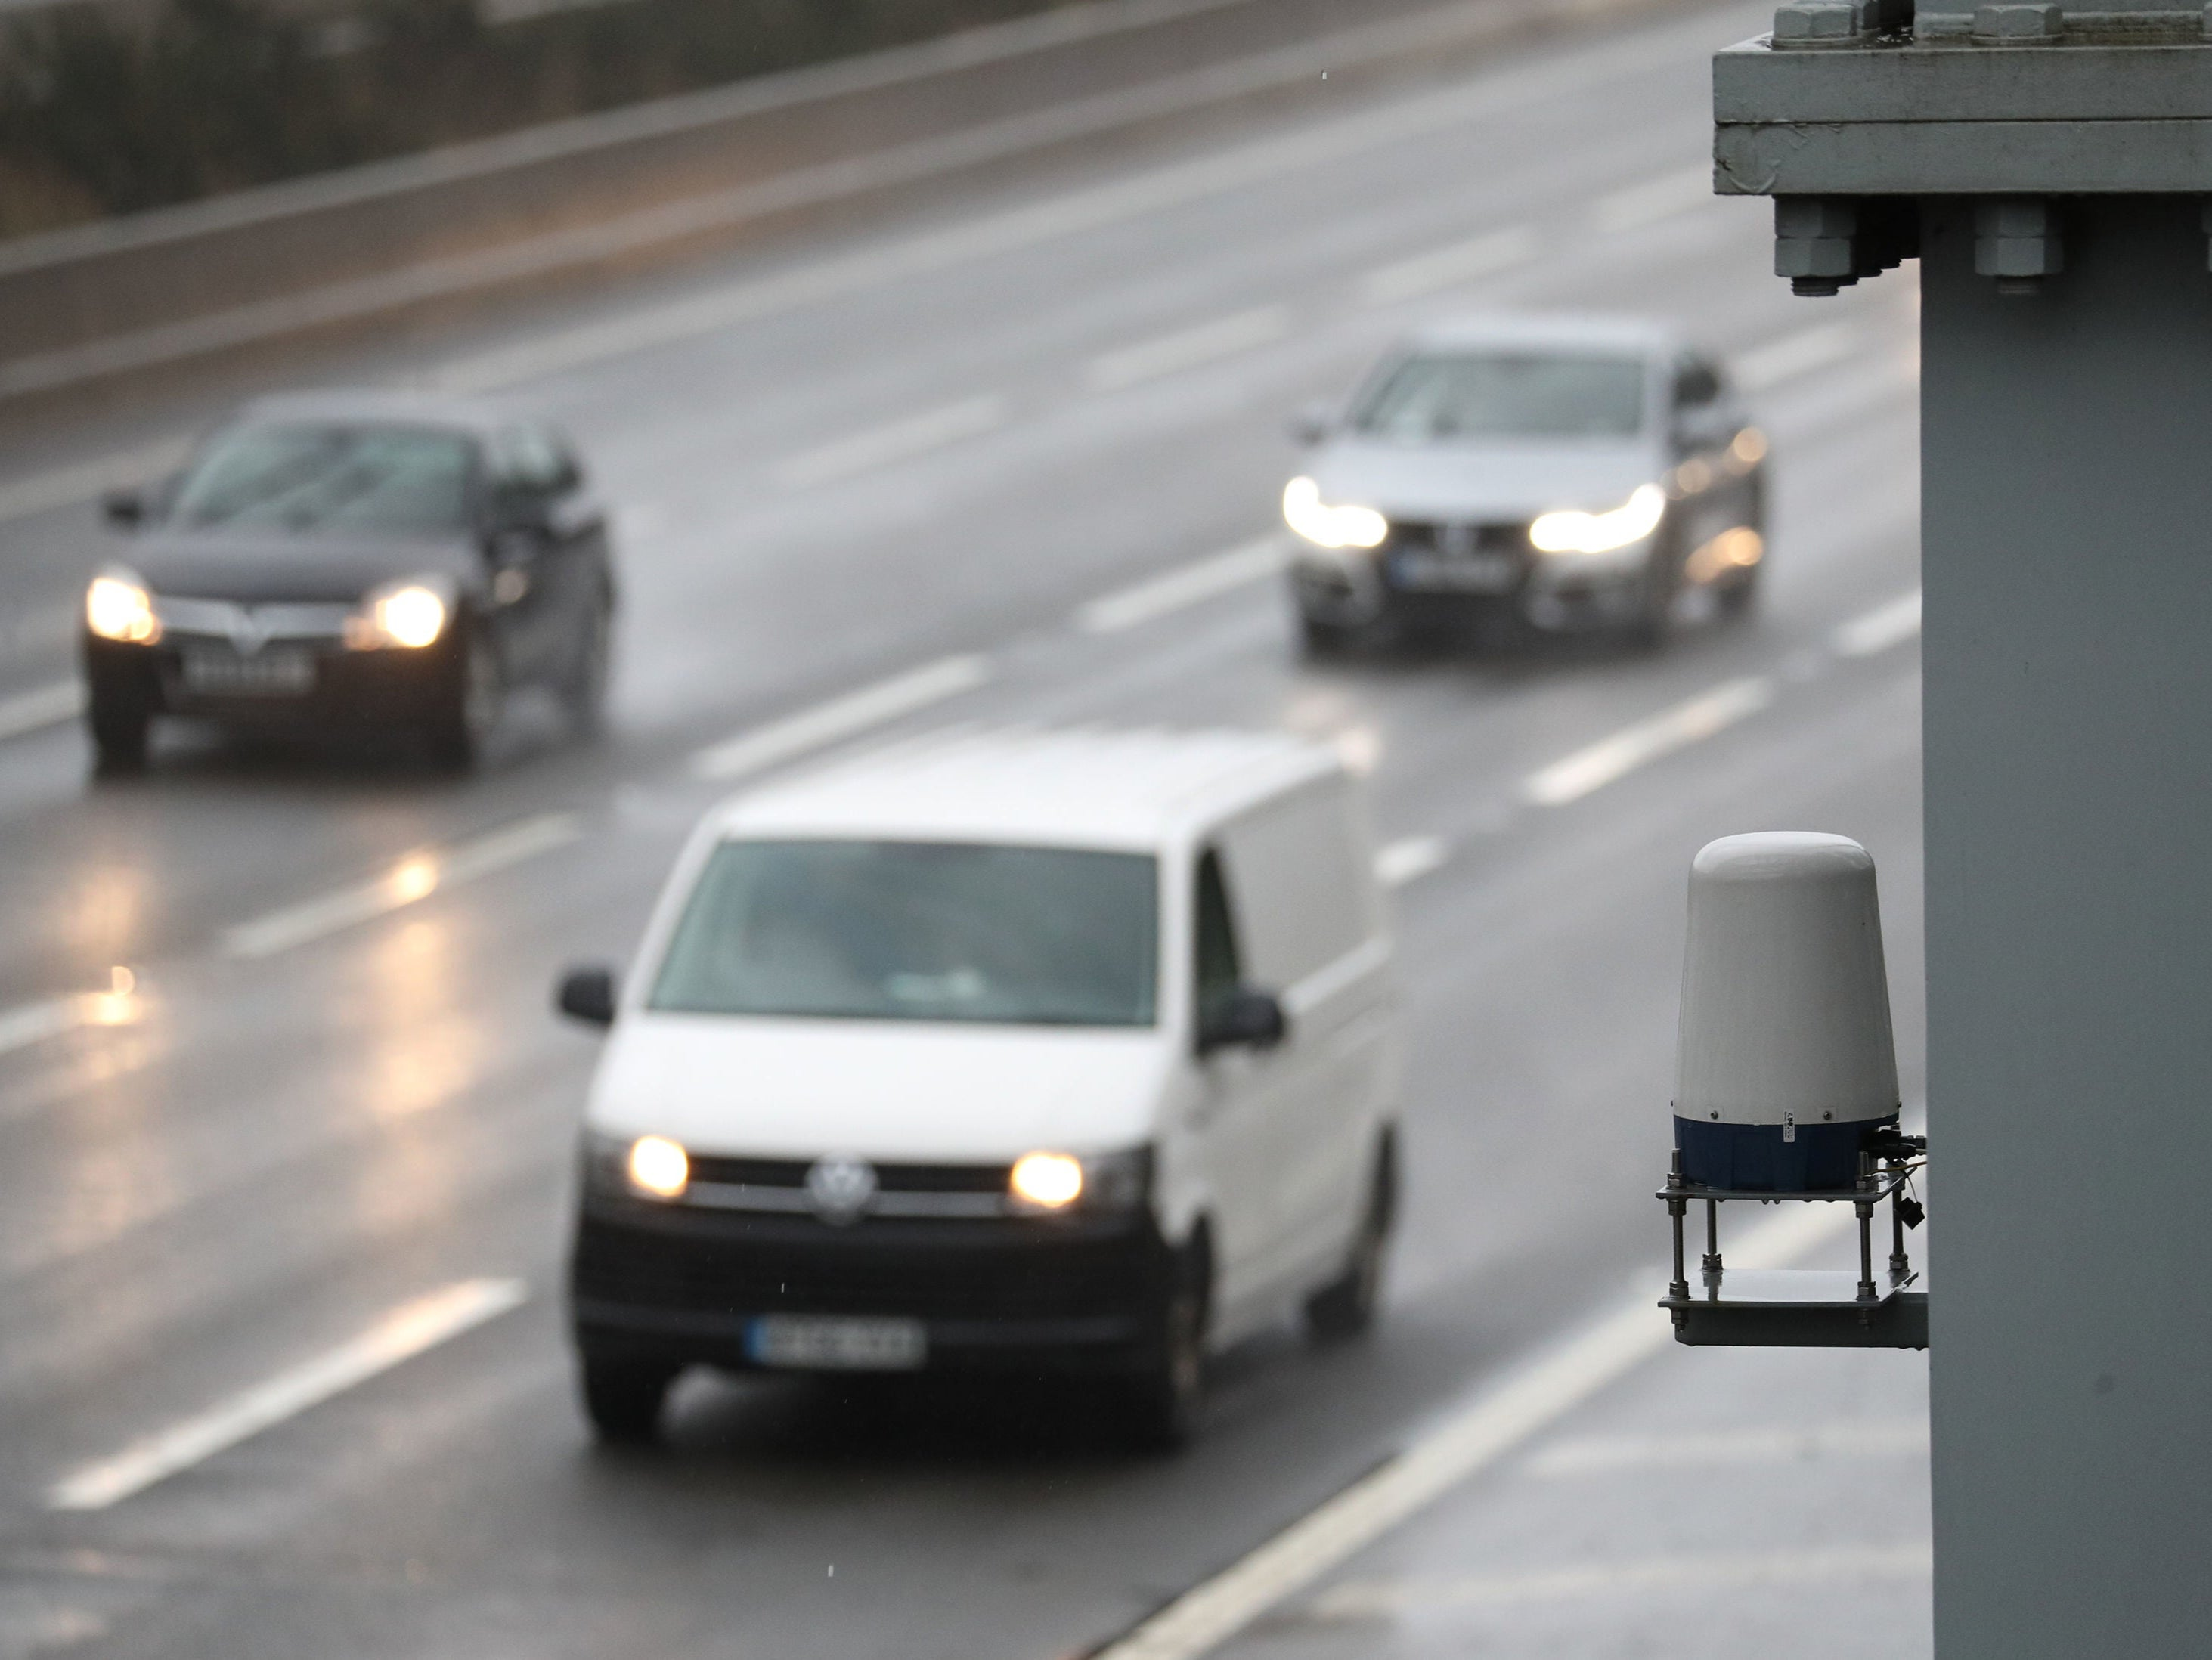 Less than 5% of England's 500-mile smart motorway network has breakdown-detecting radar technology